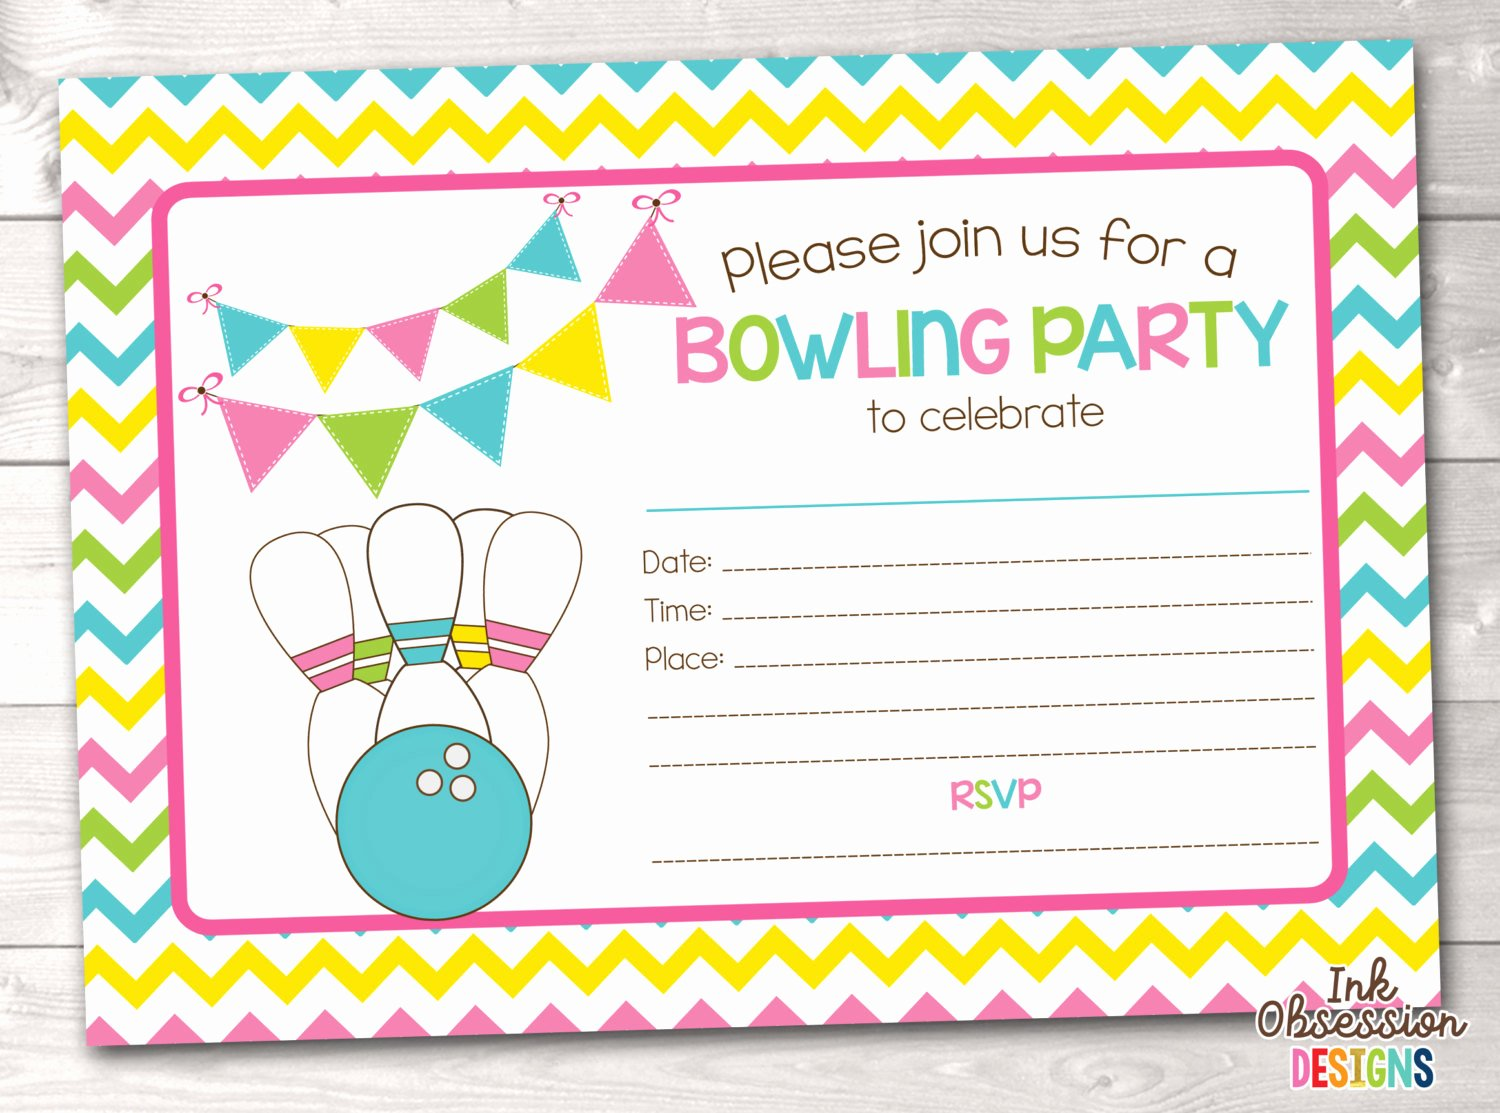 Free Bowling Invitation Template New Printable Bowling Party Invitation Fill In the Blank Birthday